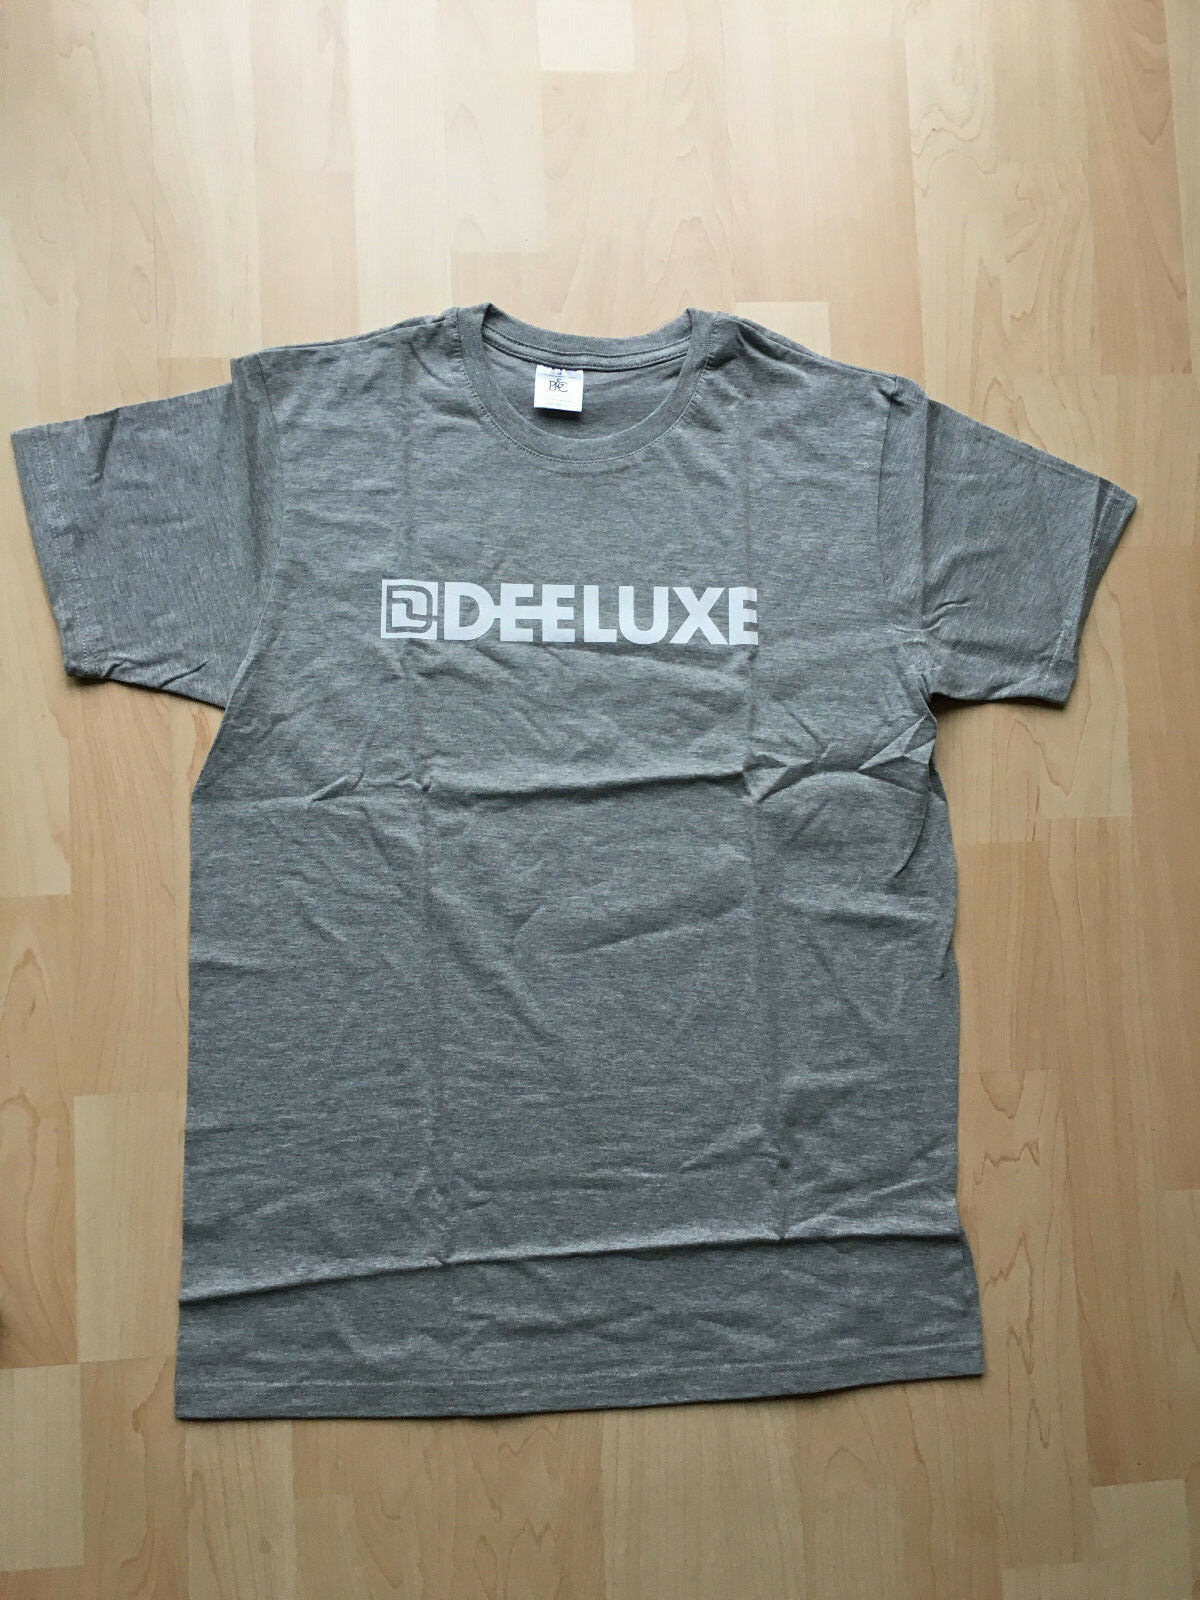 Original DEELUXE T-shirt pour Snowboarder, NEUF!%% gris, taille M, NEUF!%% Snowboarder, 670df3